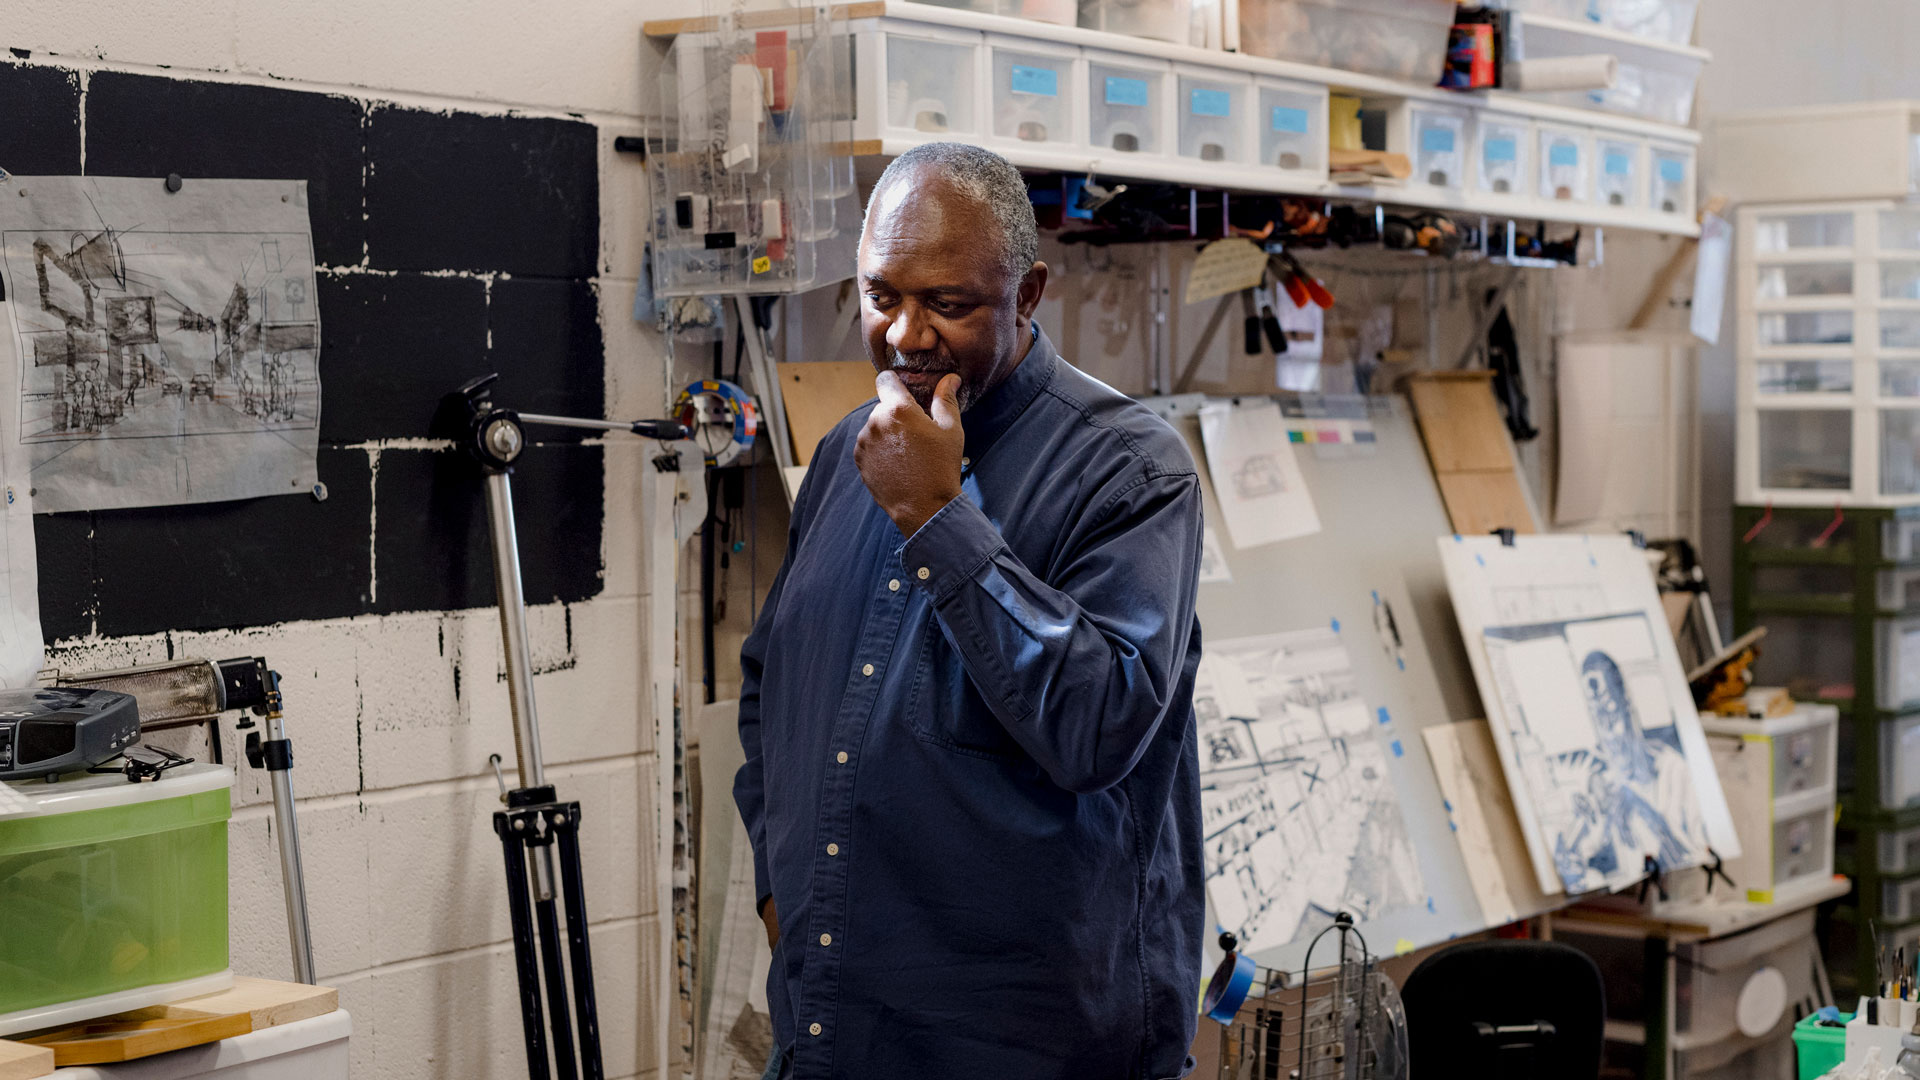 A photo of the artist Kerry James Marshall in his studio in 2016.